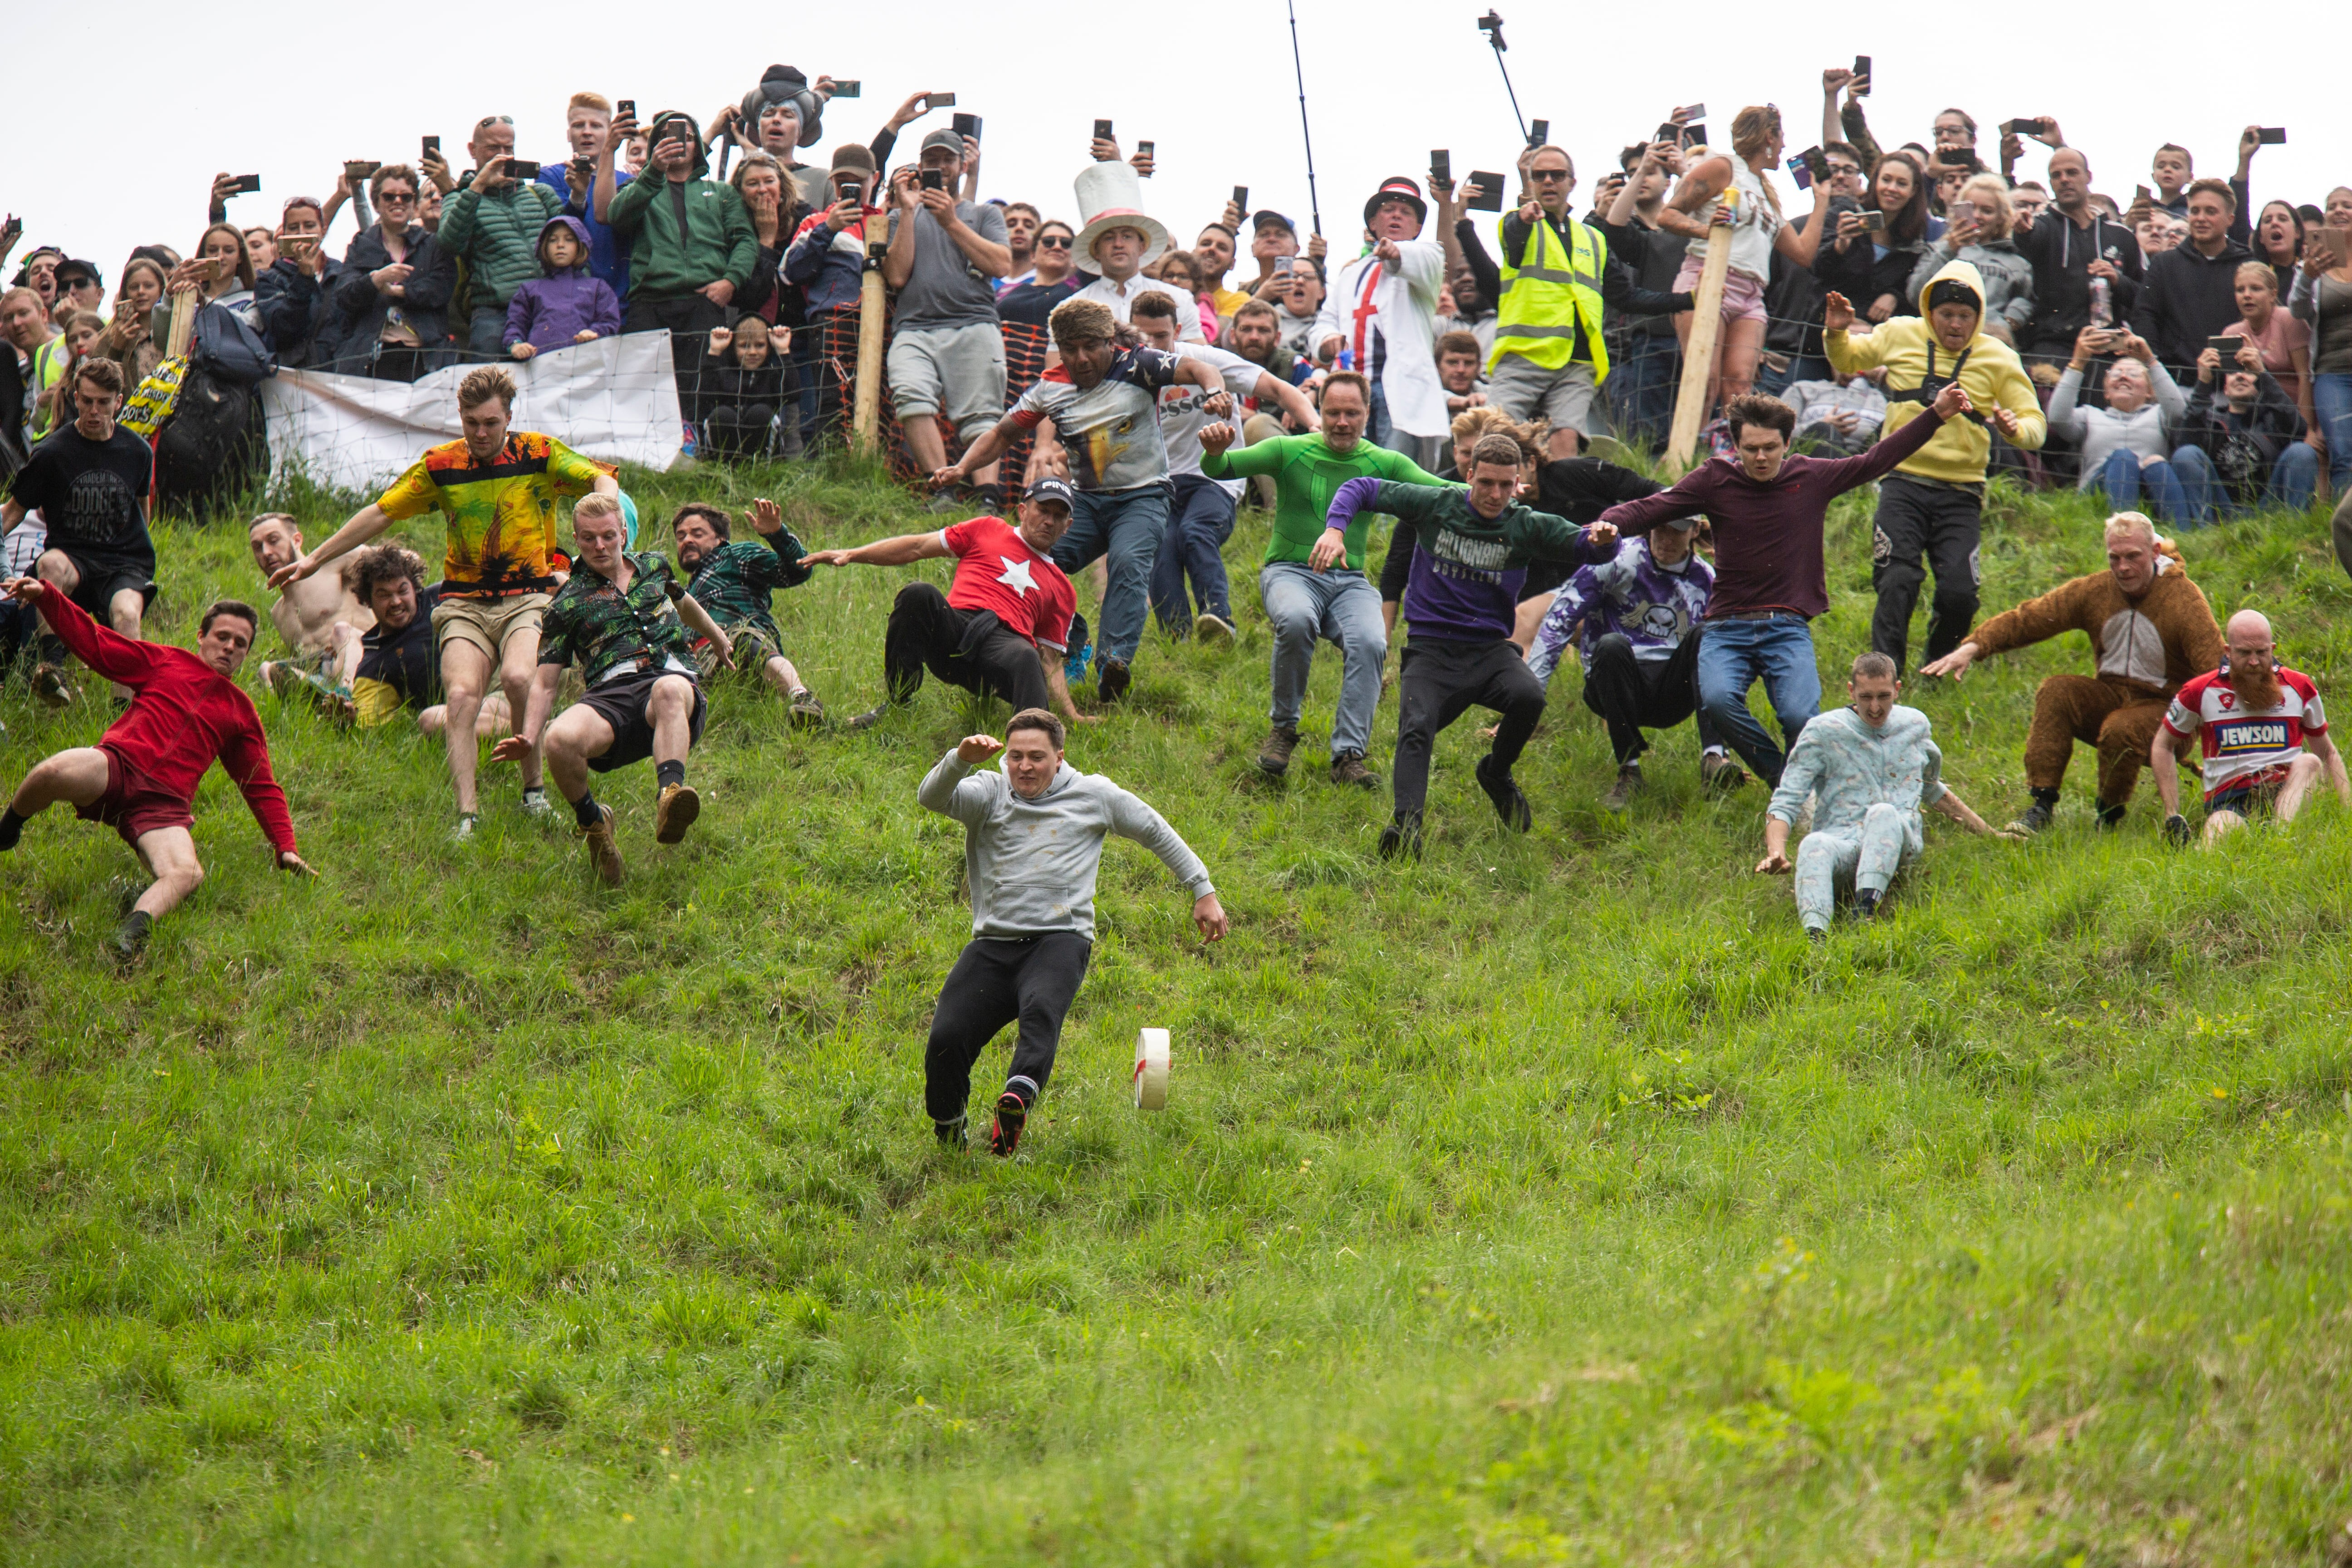 Cheese rolling - Gloucestershire, Angleterre, UK